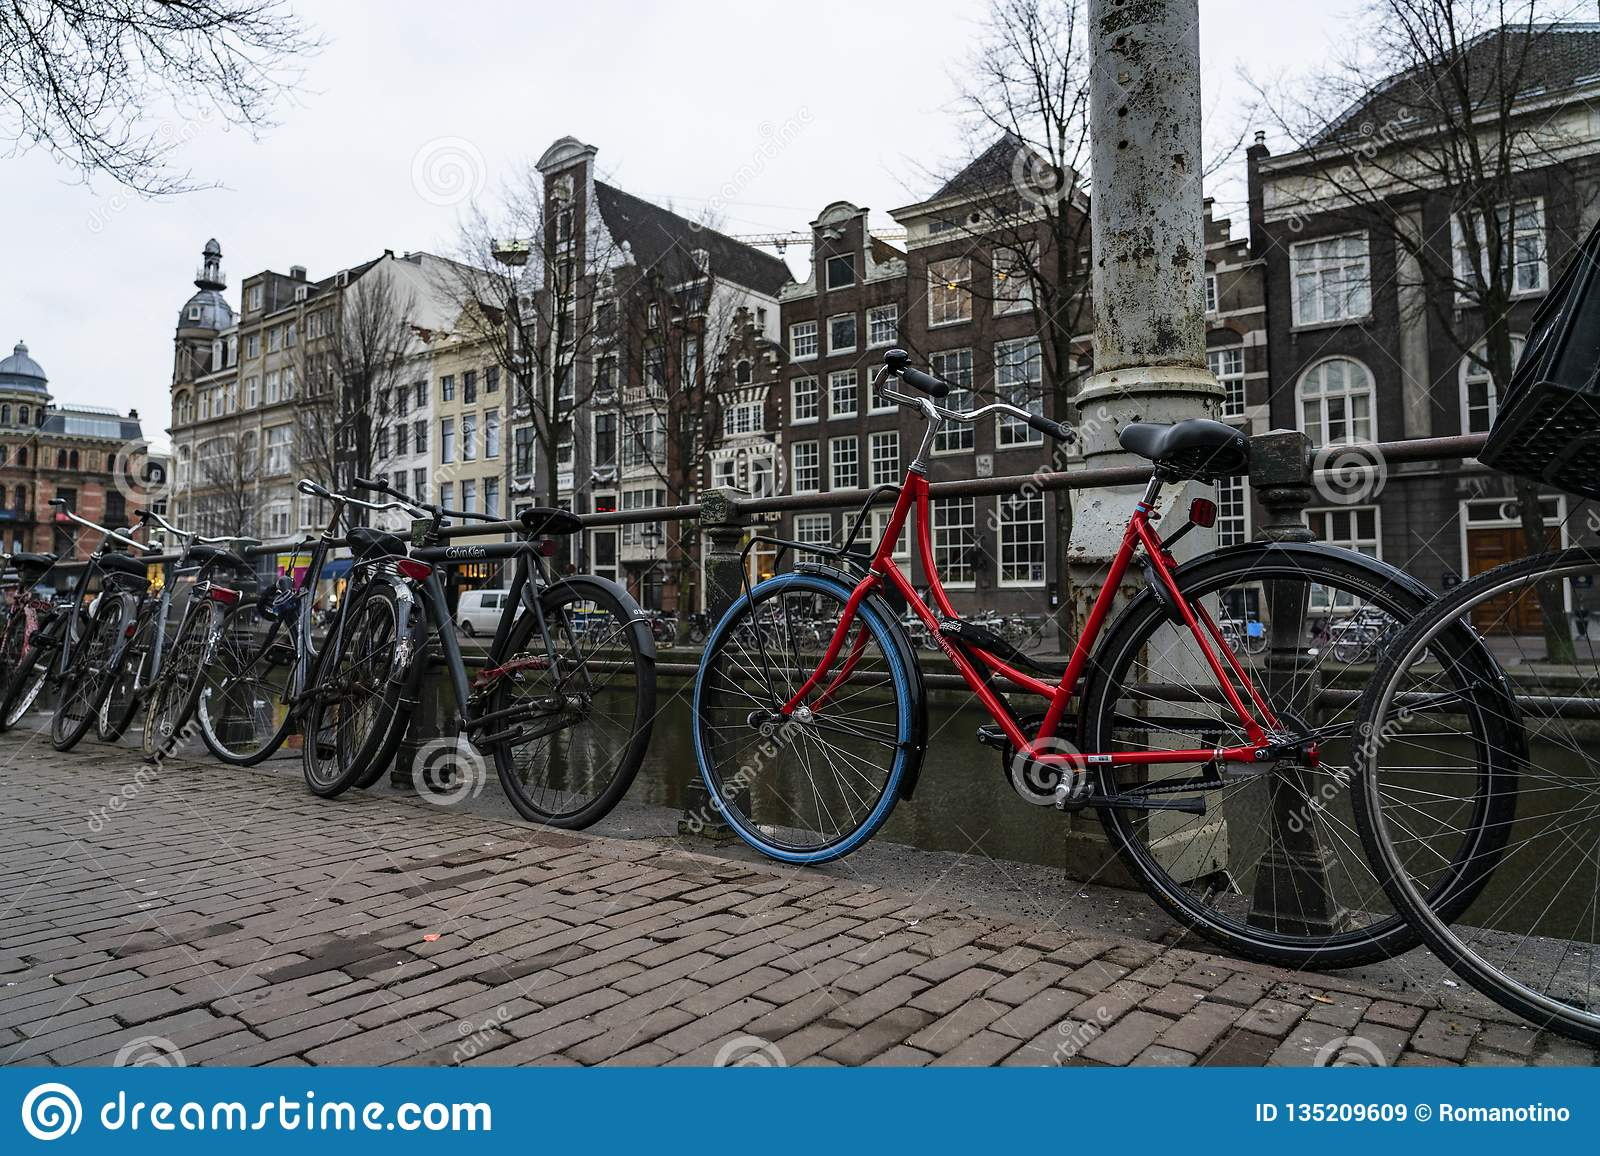 Amsterdam a red bicycle